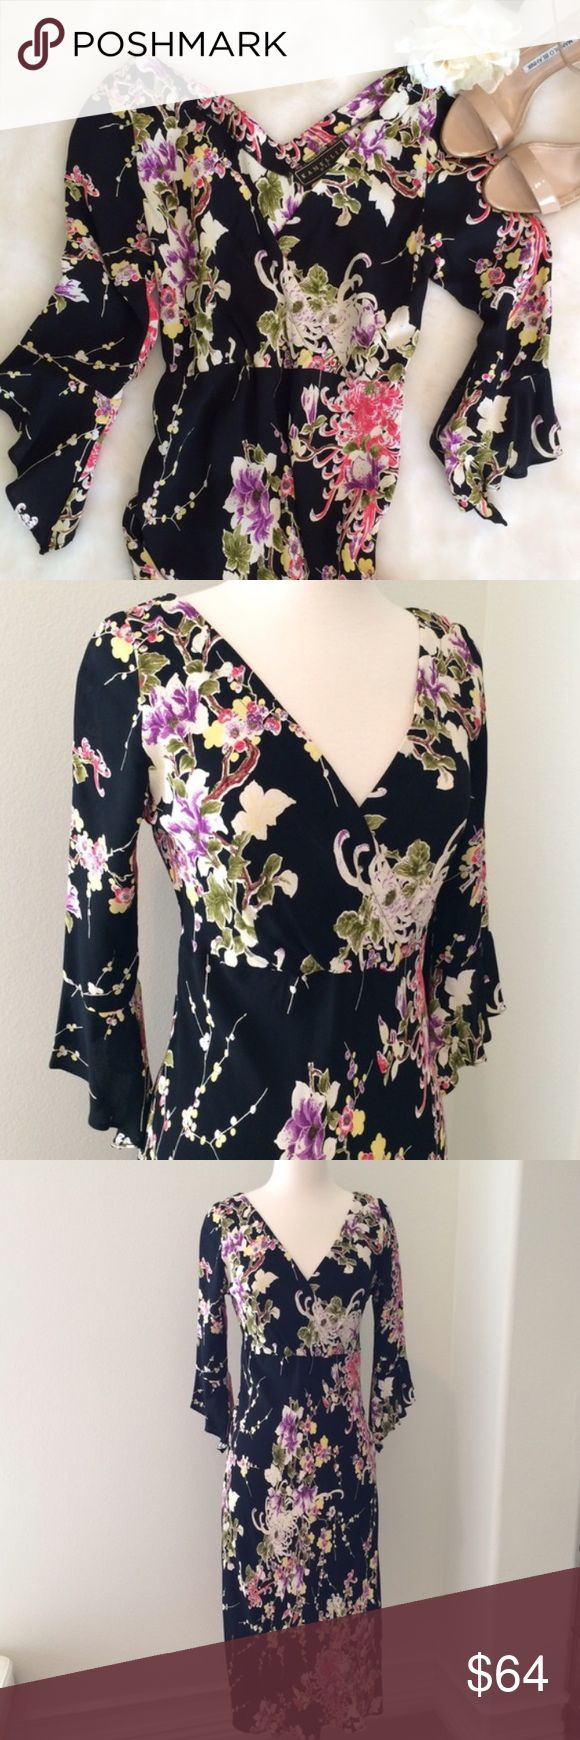 Floral Surplice dress with 3/4 sleeve Like new floral Surplice dress with 3/4 flutter sleeves. Looks beautiful on. Worn once. Figure flattering! Can fit Small or small medium Kamelia Dresses